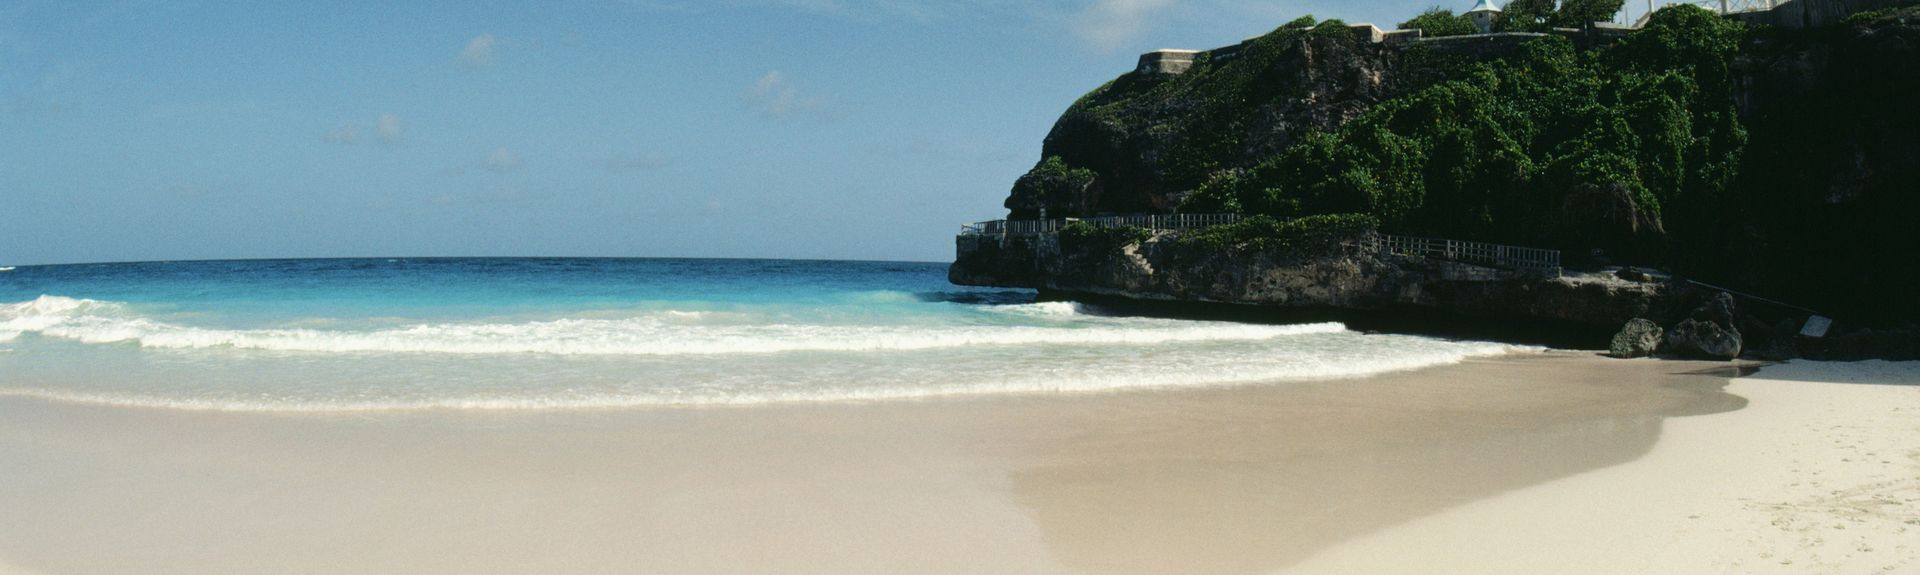 Crane Beach, Diamond Valley, St. Philip, Barbados